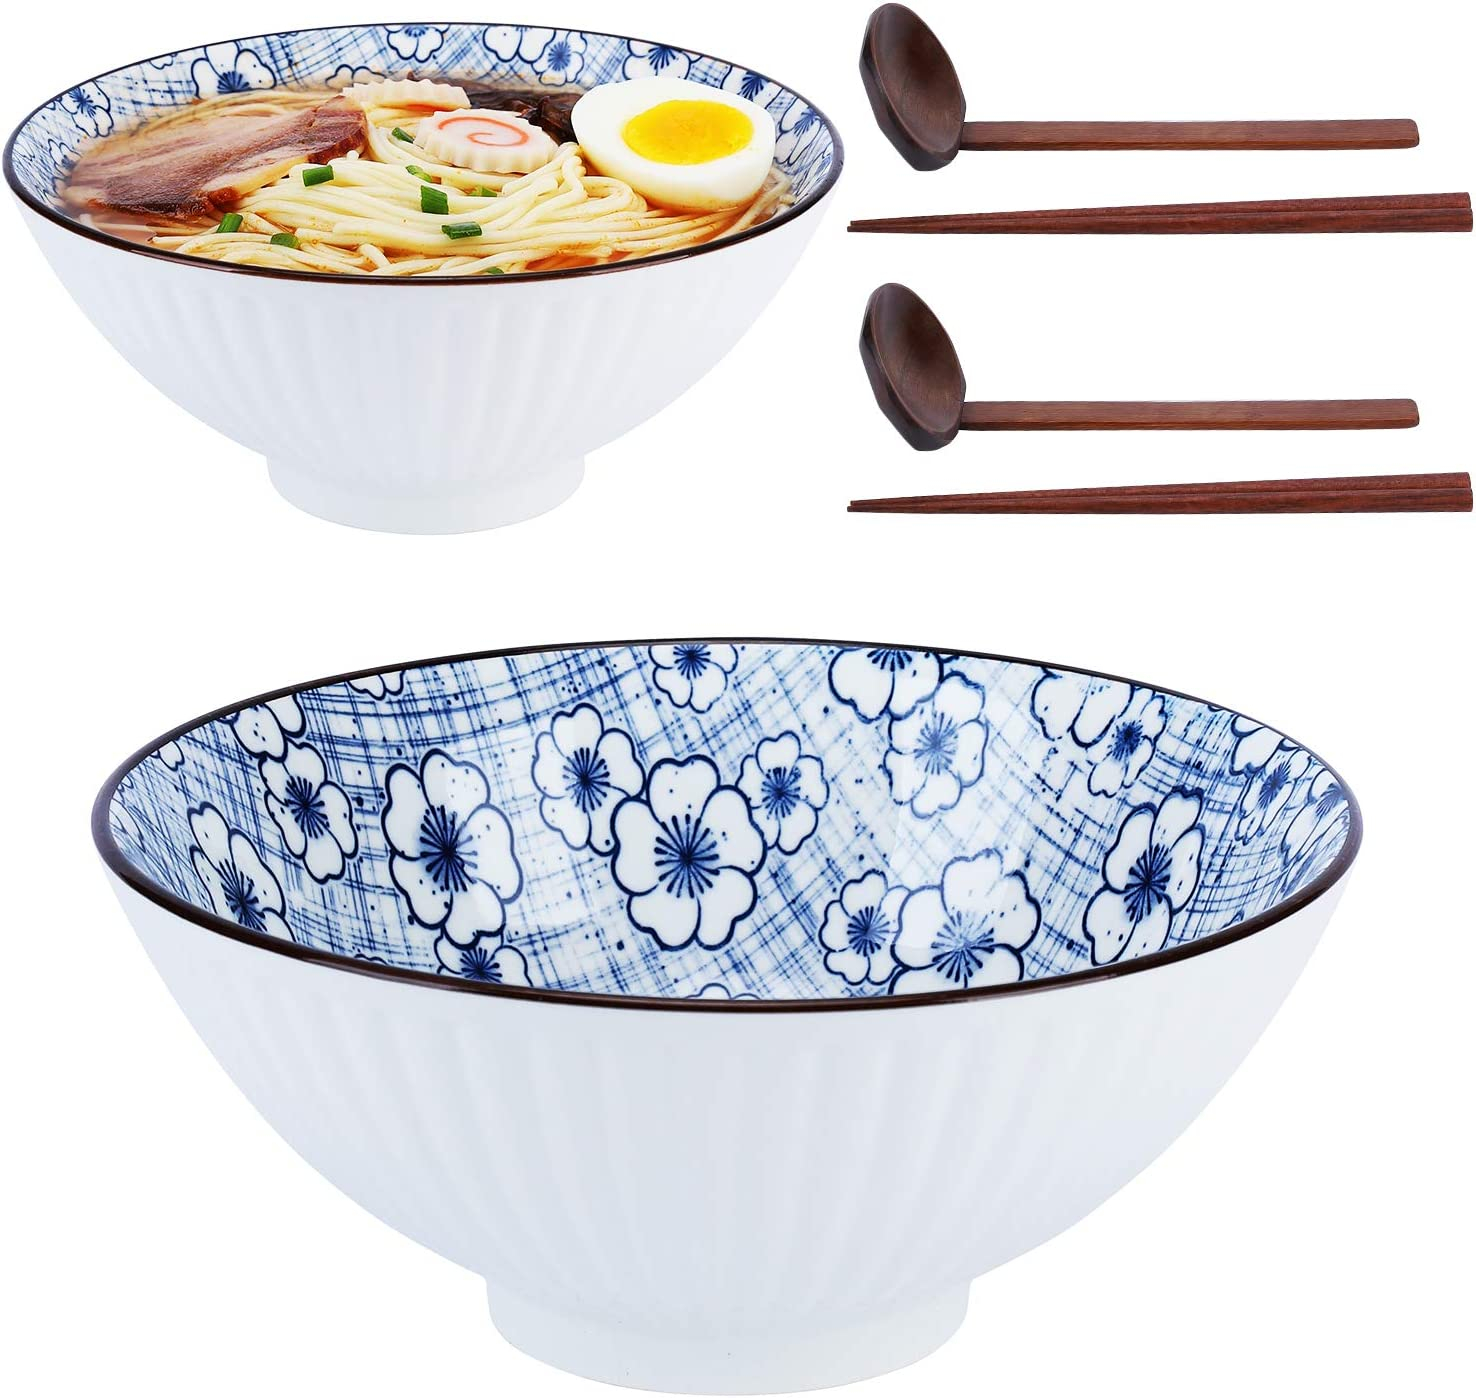 Rice Asian Noodles 45 oz Premium Deep Pho Bowl with Matching Spoon and Chopsticks for Soup 2 Sets Udon 6 Piece Cereal Plum blossom NJCharms Japanese Ceramic Ramen Noodle Bowls